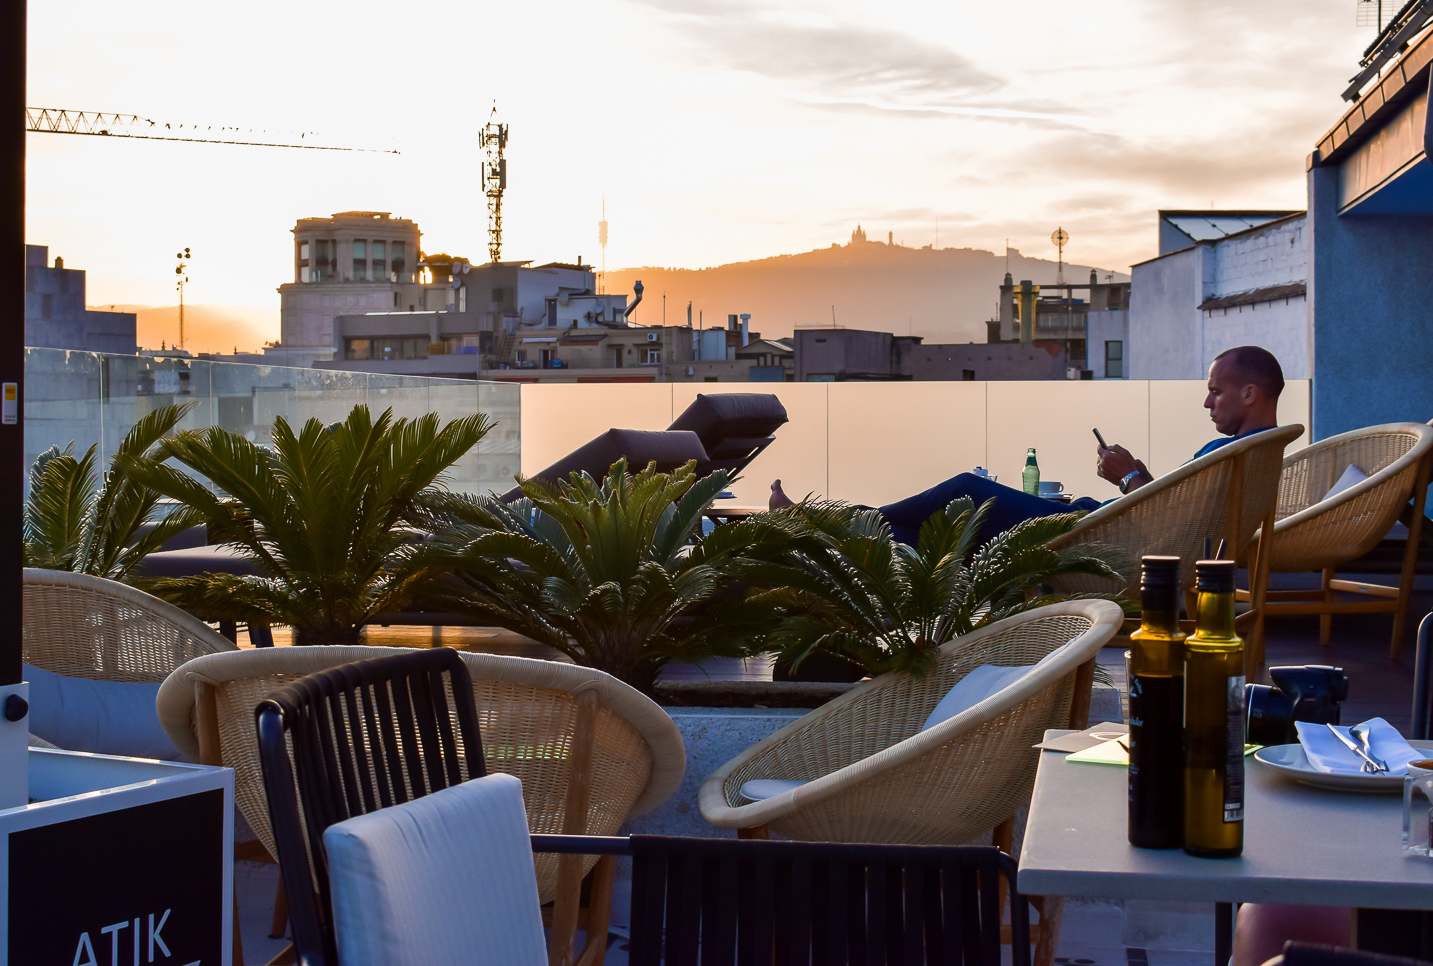 H10 Cubik hotel Barcelona rooftop terrace views over Barcelona